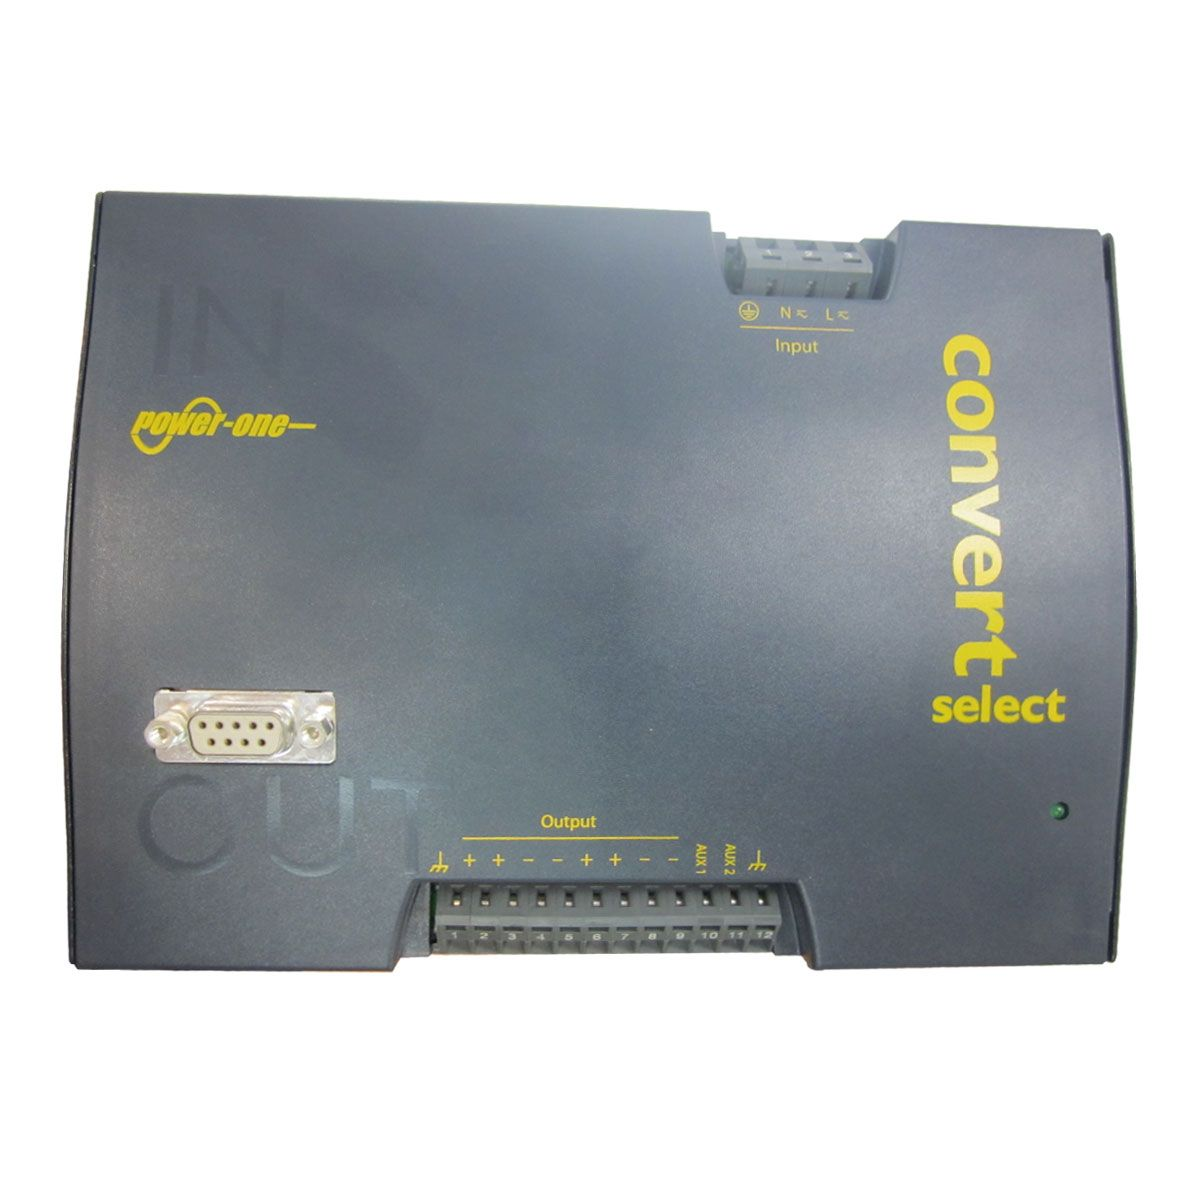 Convertidor AC-DC / DC-DC 500 Watts Power-One